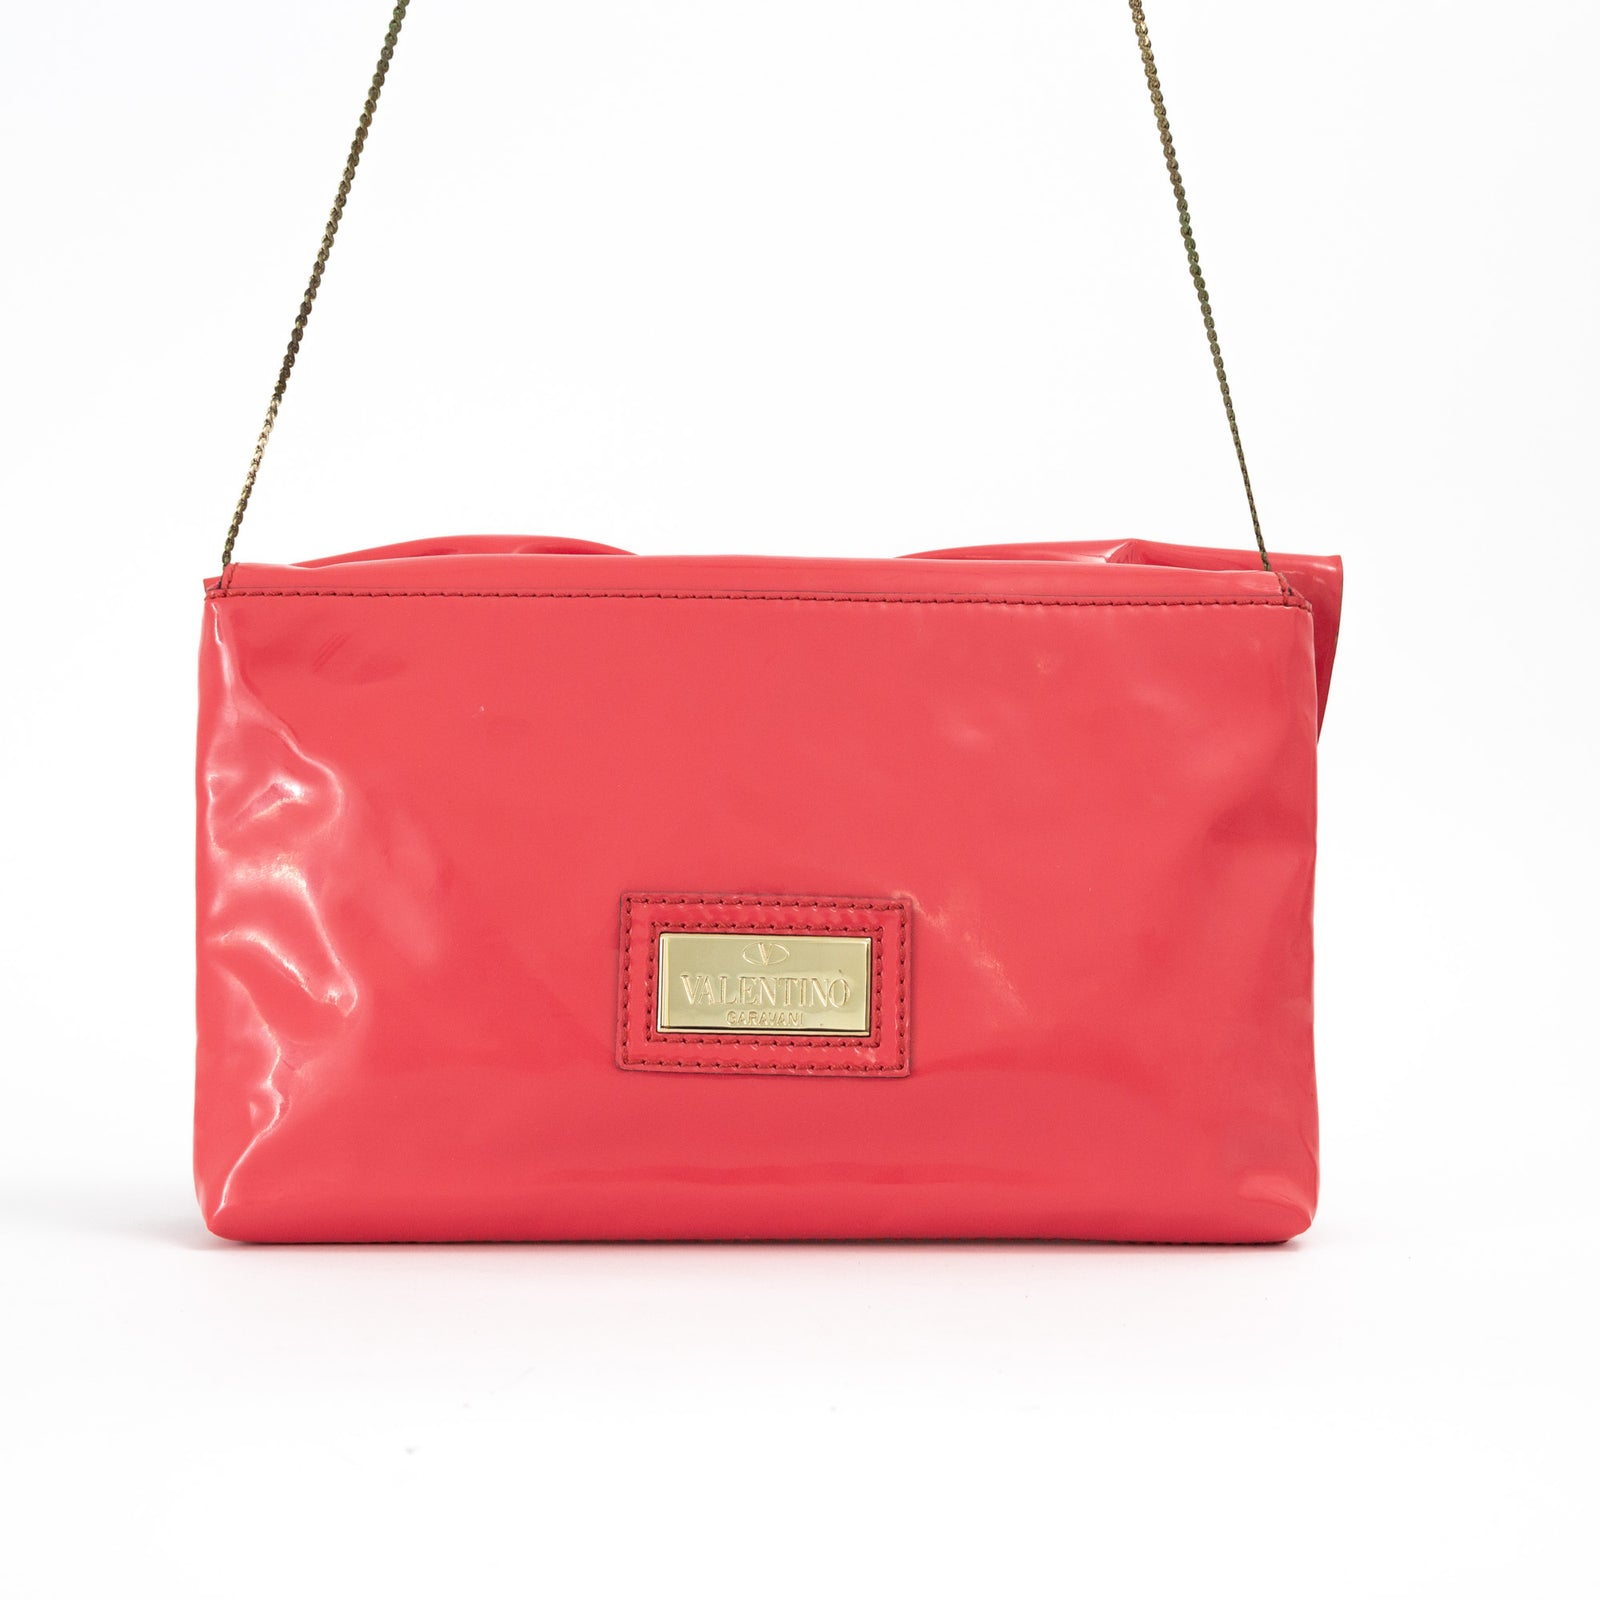 Flamingo Pink Crossbody